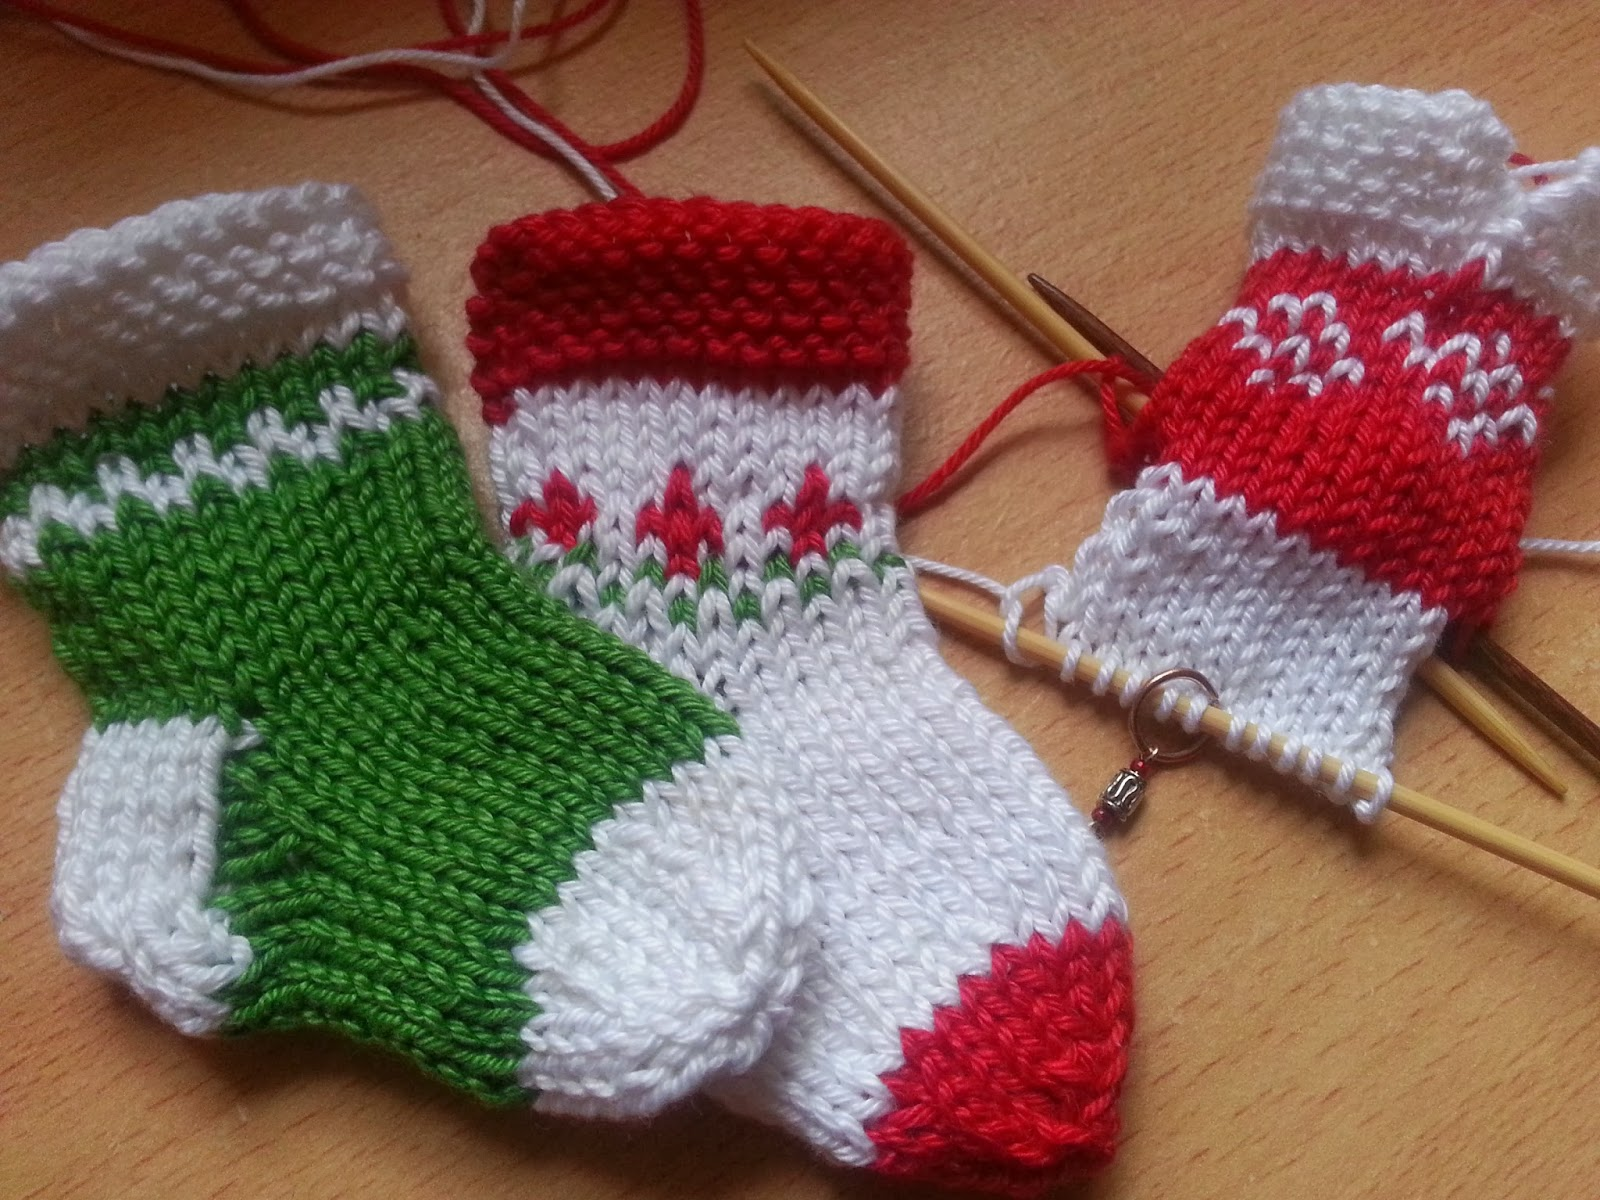 knitshop.co.uk: Knit Christmas mini stockings for your tree